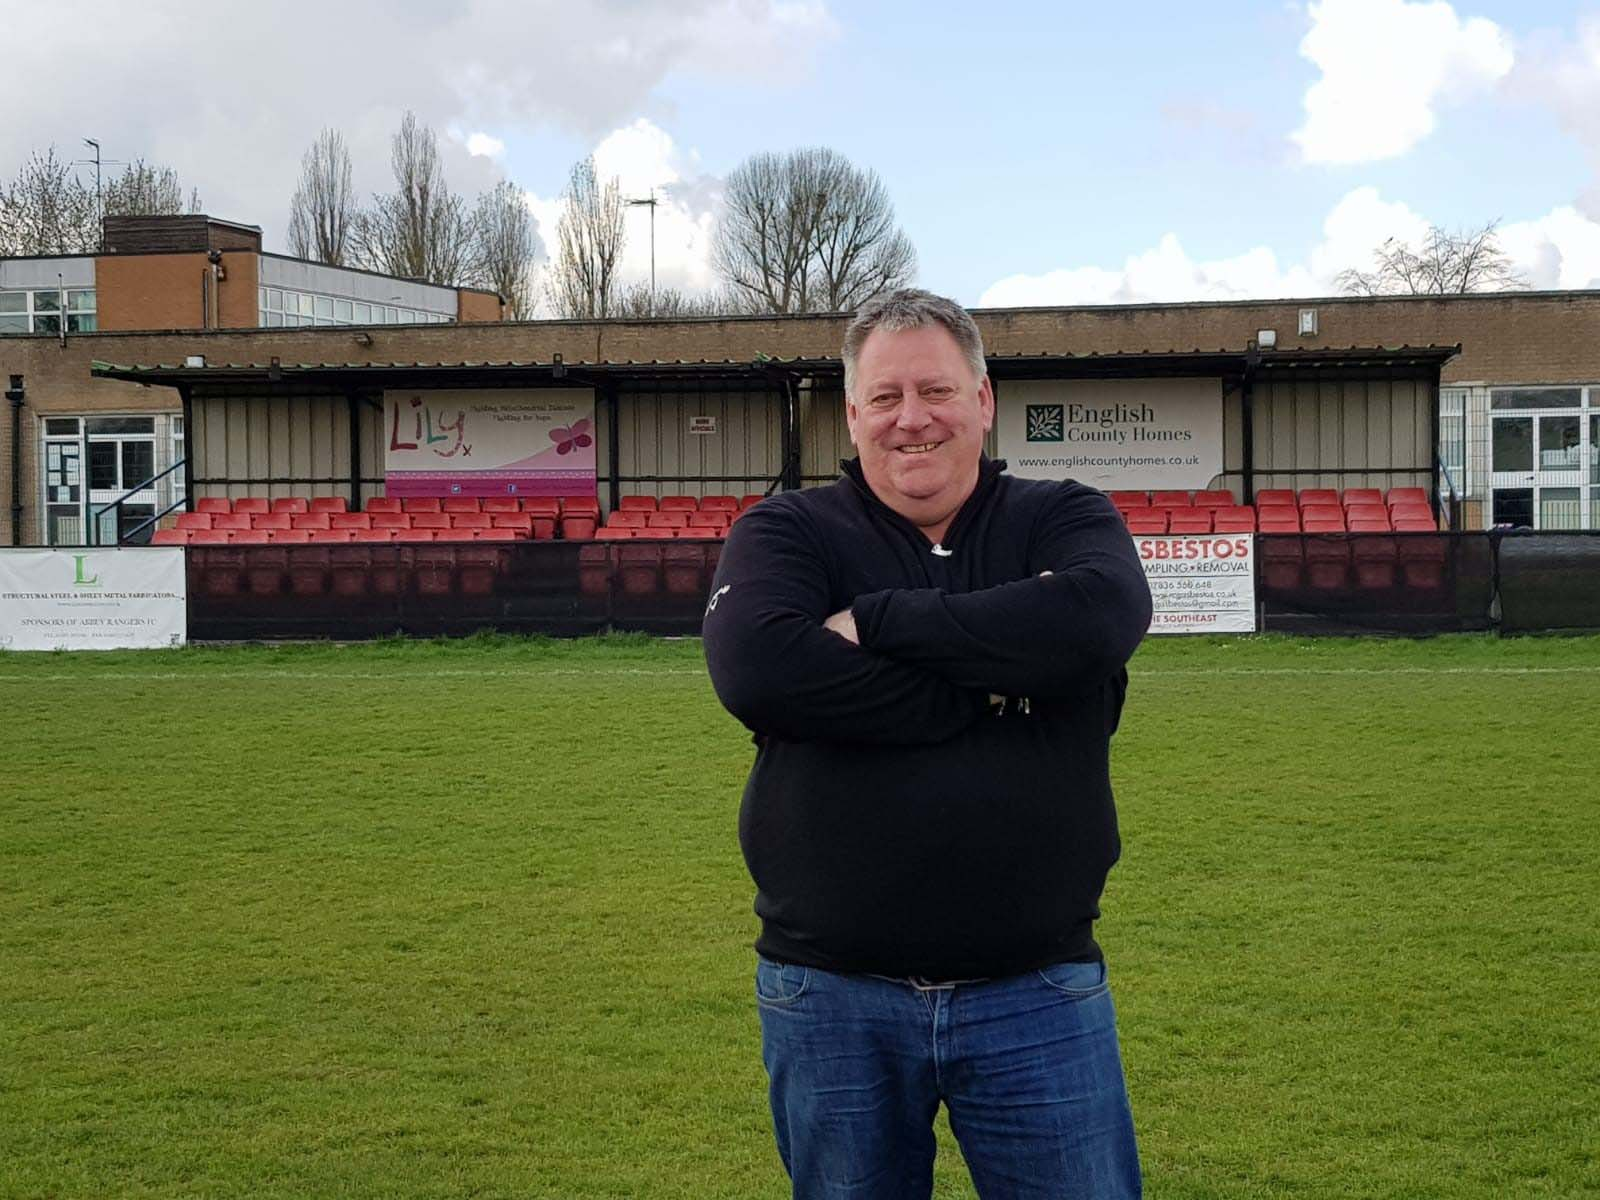 Abbey Rangers Manager happy to be working with 365 Concrete